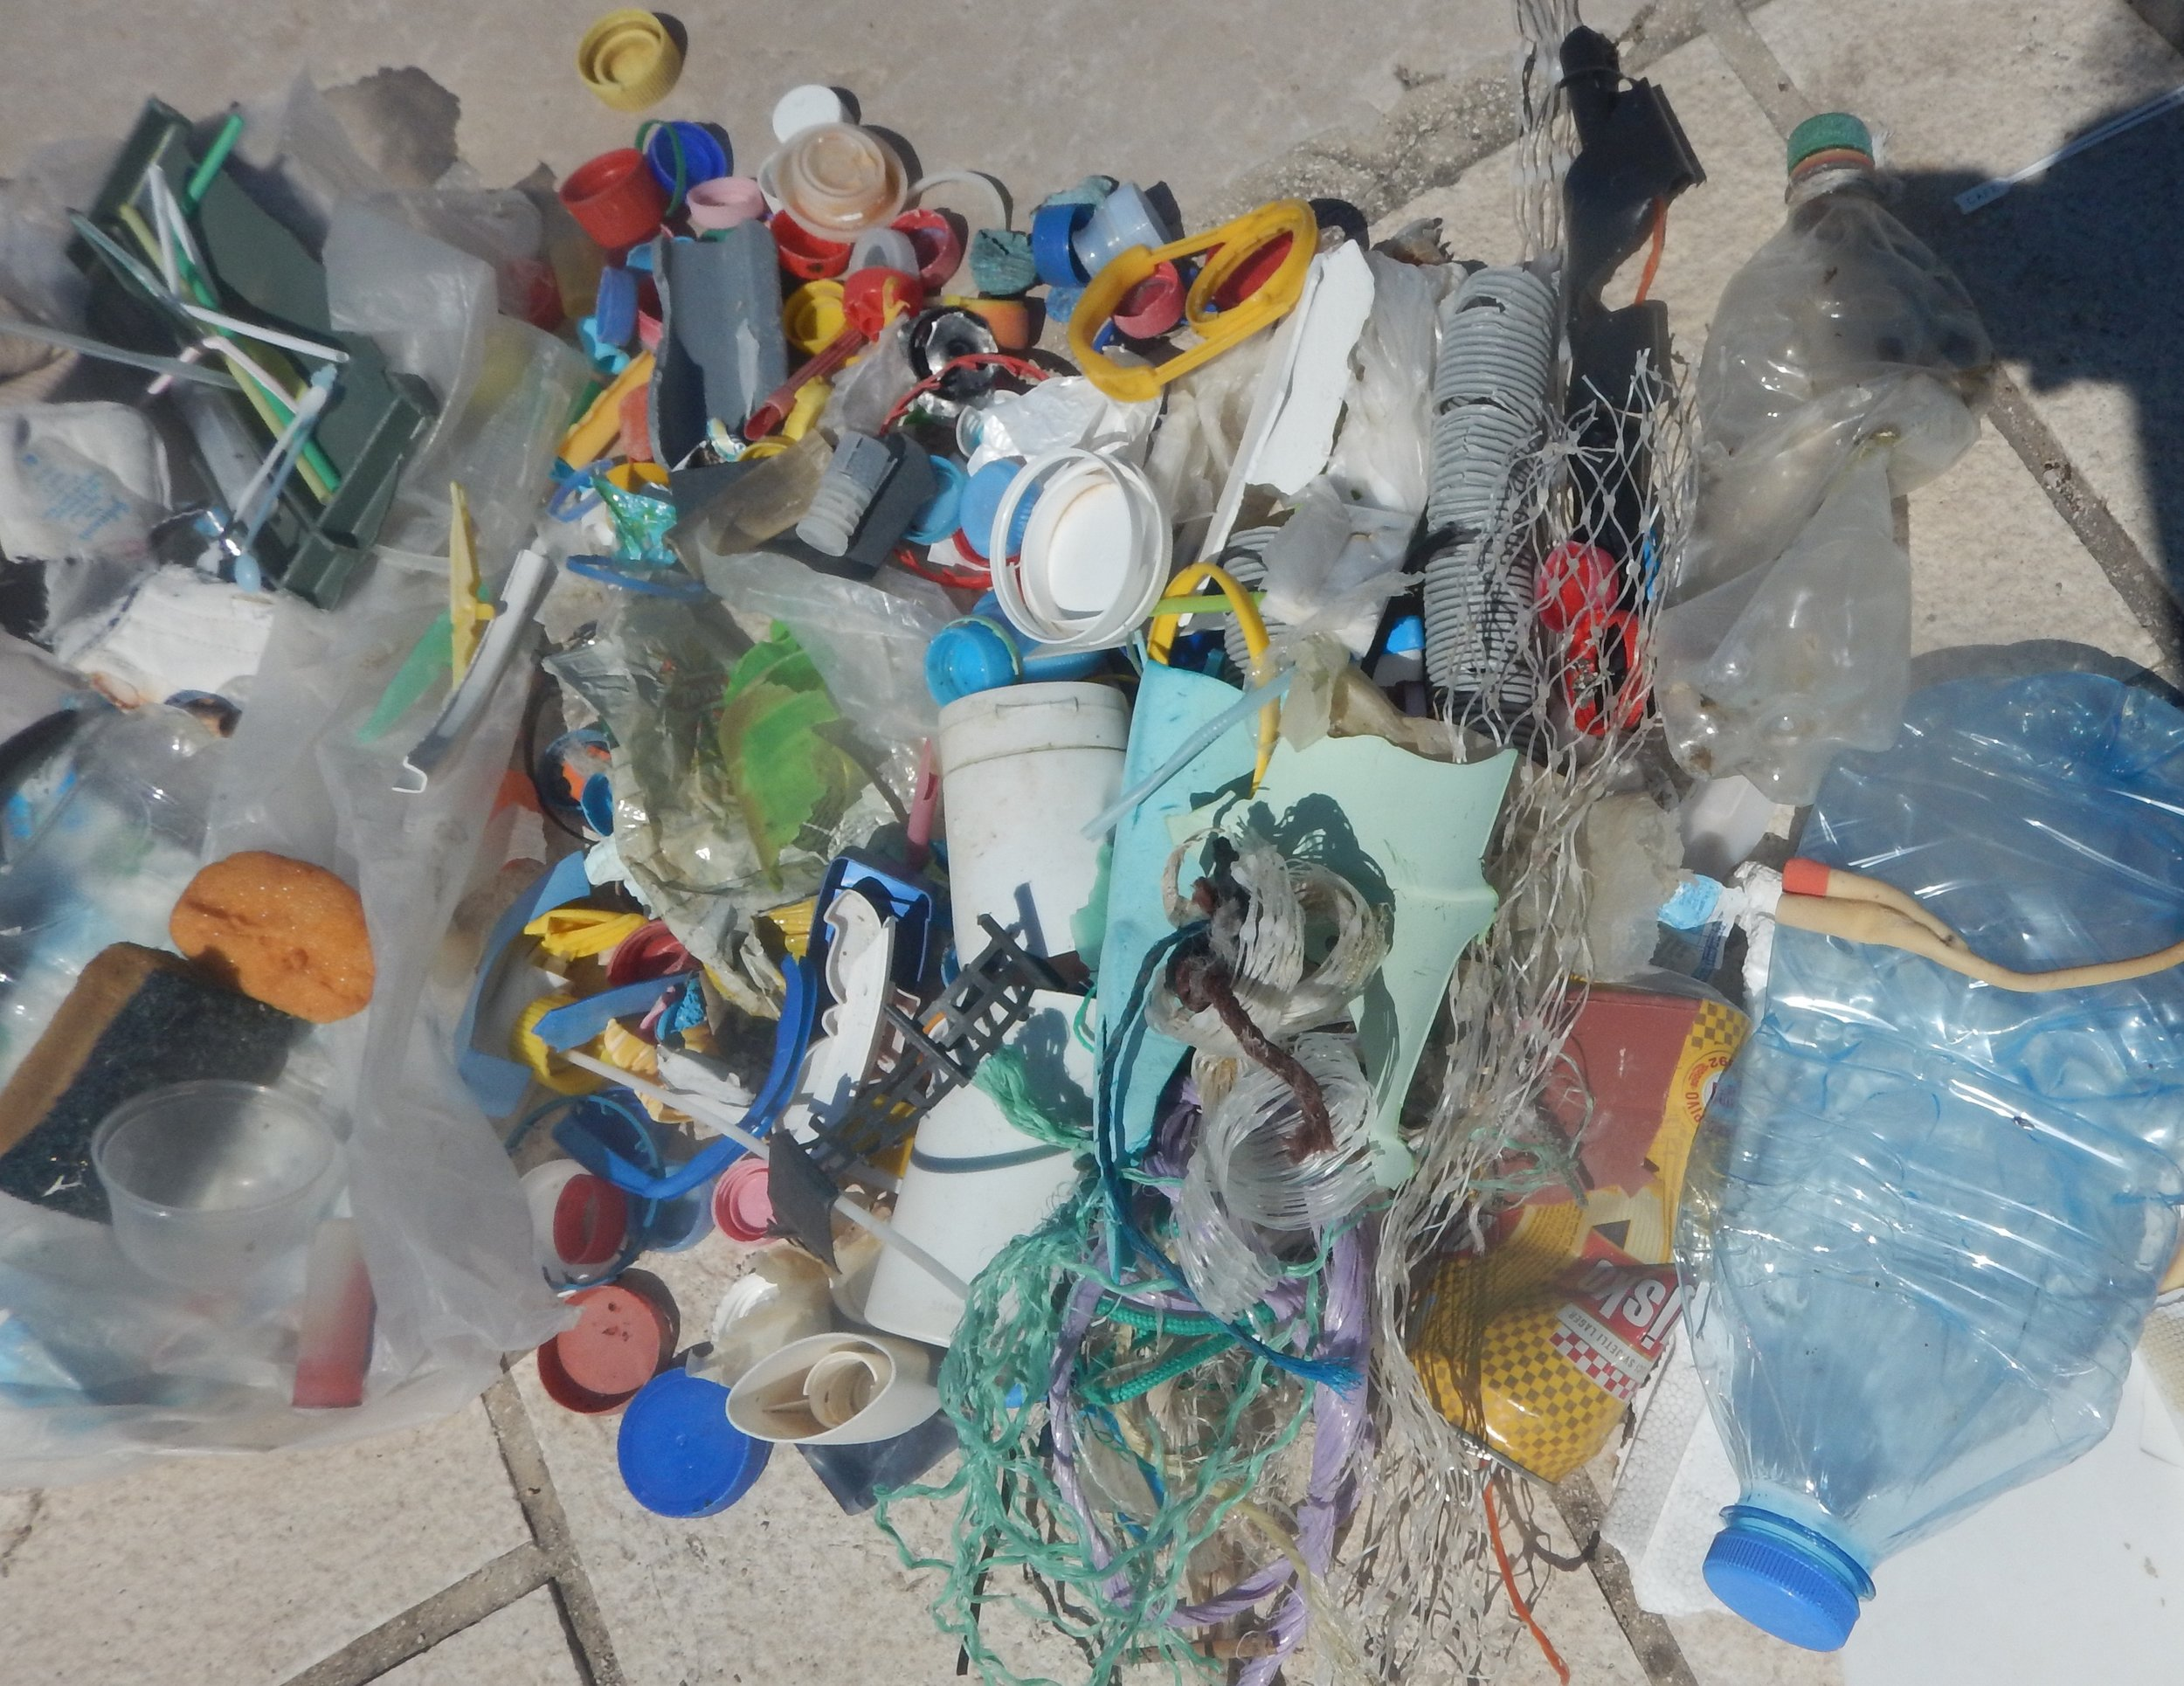 I collected this rubbish, mostly plastic in a 20 m section of the beach. The plastic bag I collected it in was also flotsam and jetsam.